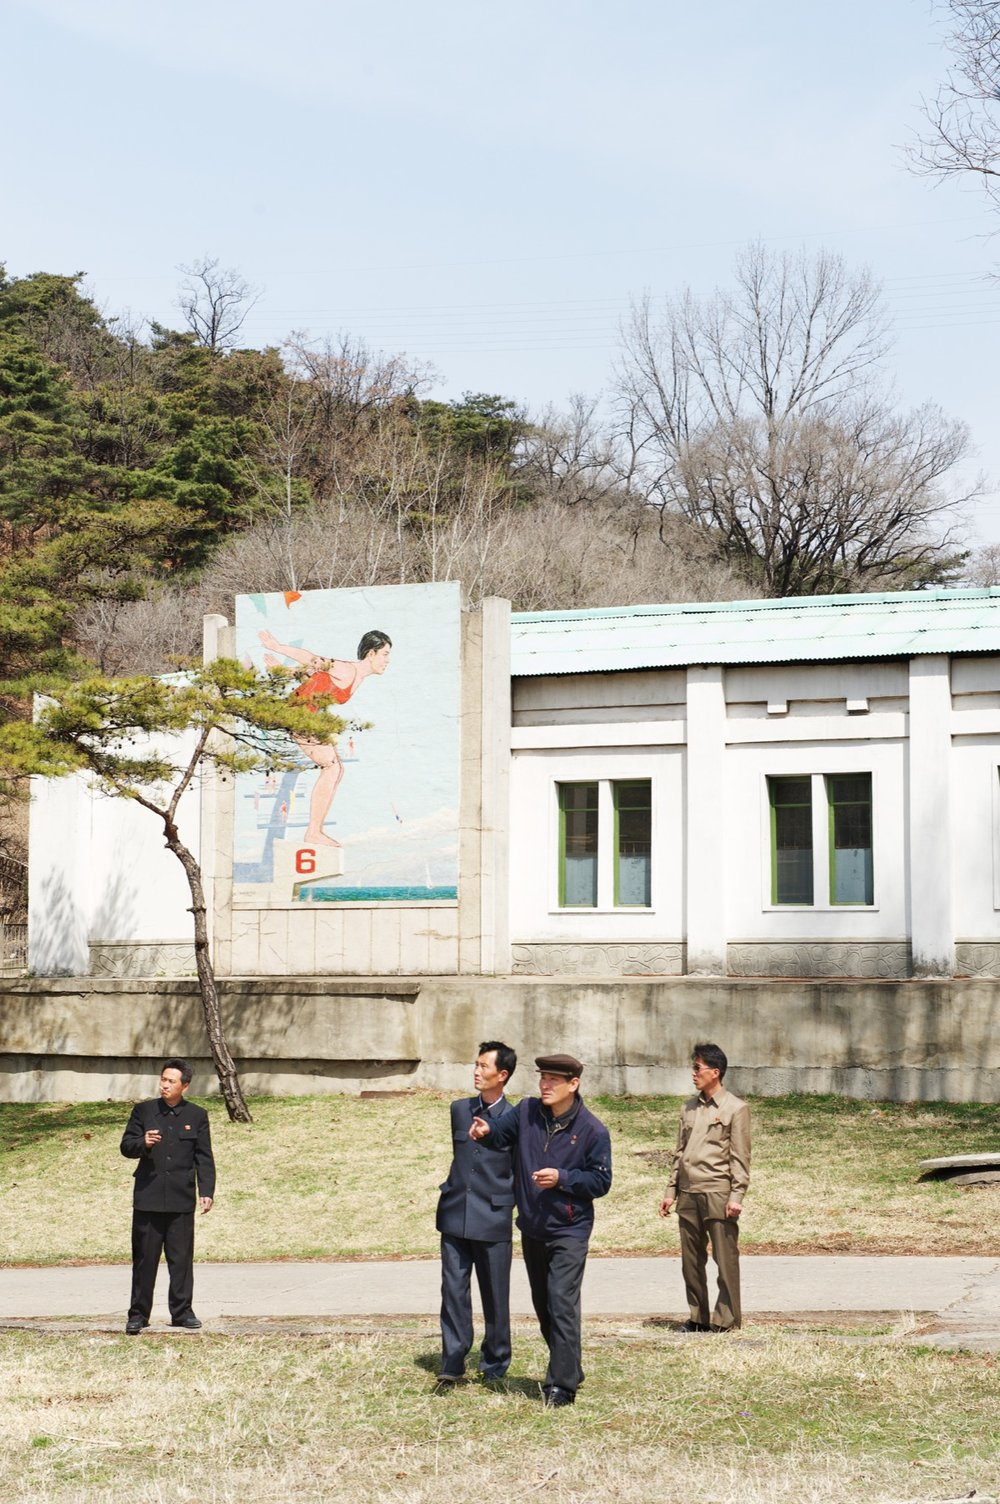 Pool, North Korea Architecture of Propaganda - Wolf Nitch Photography